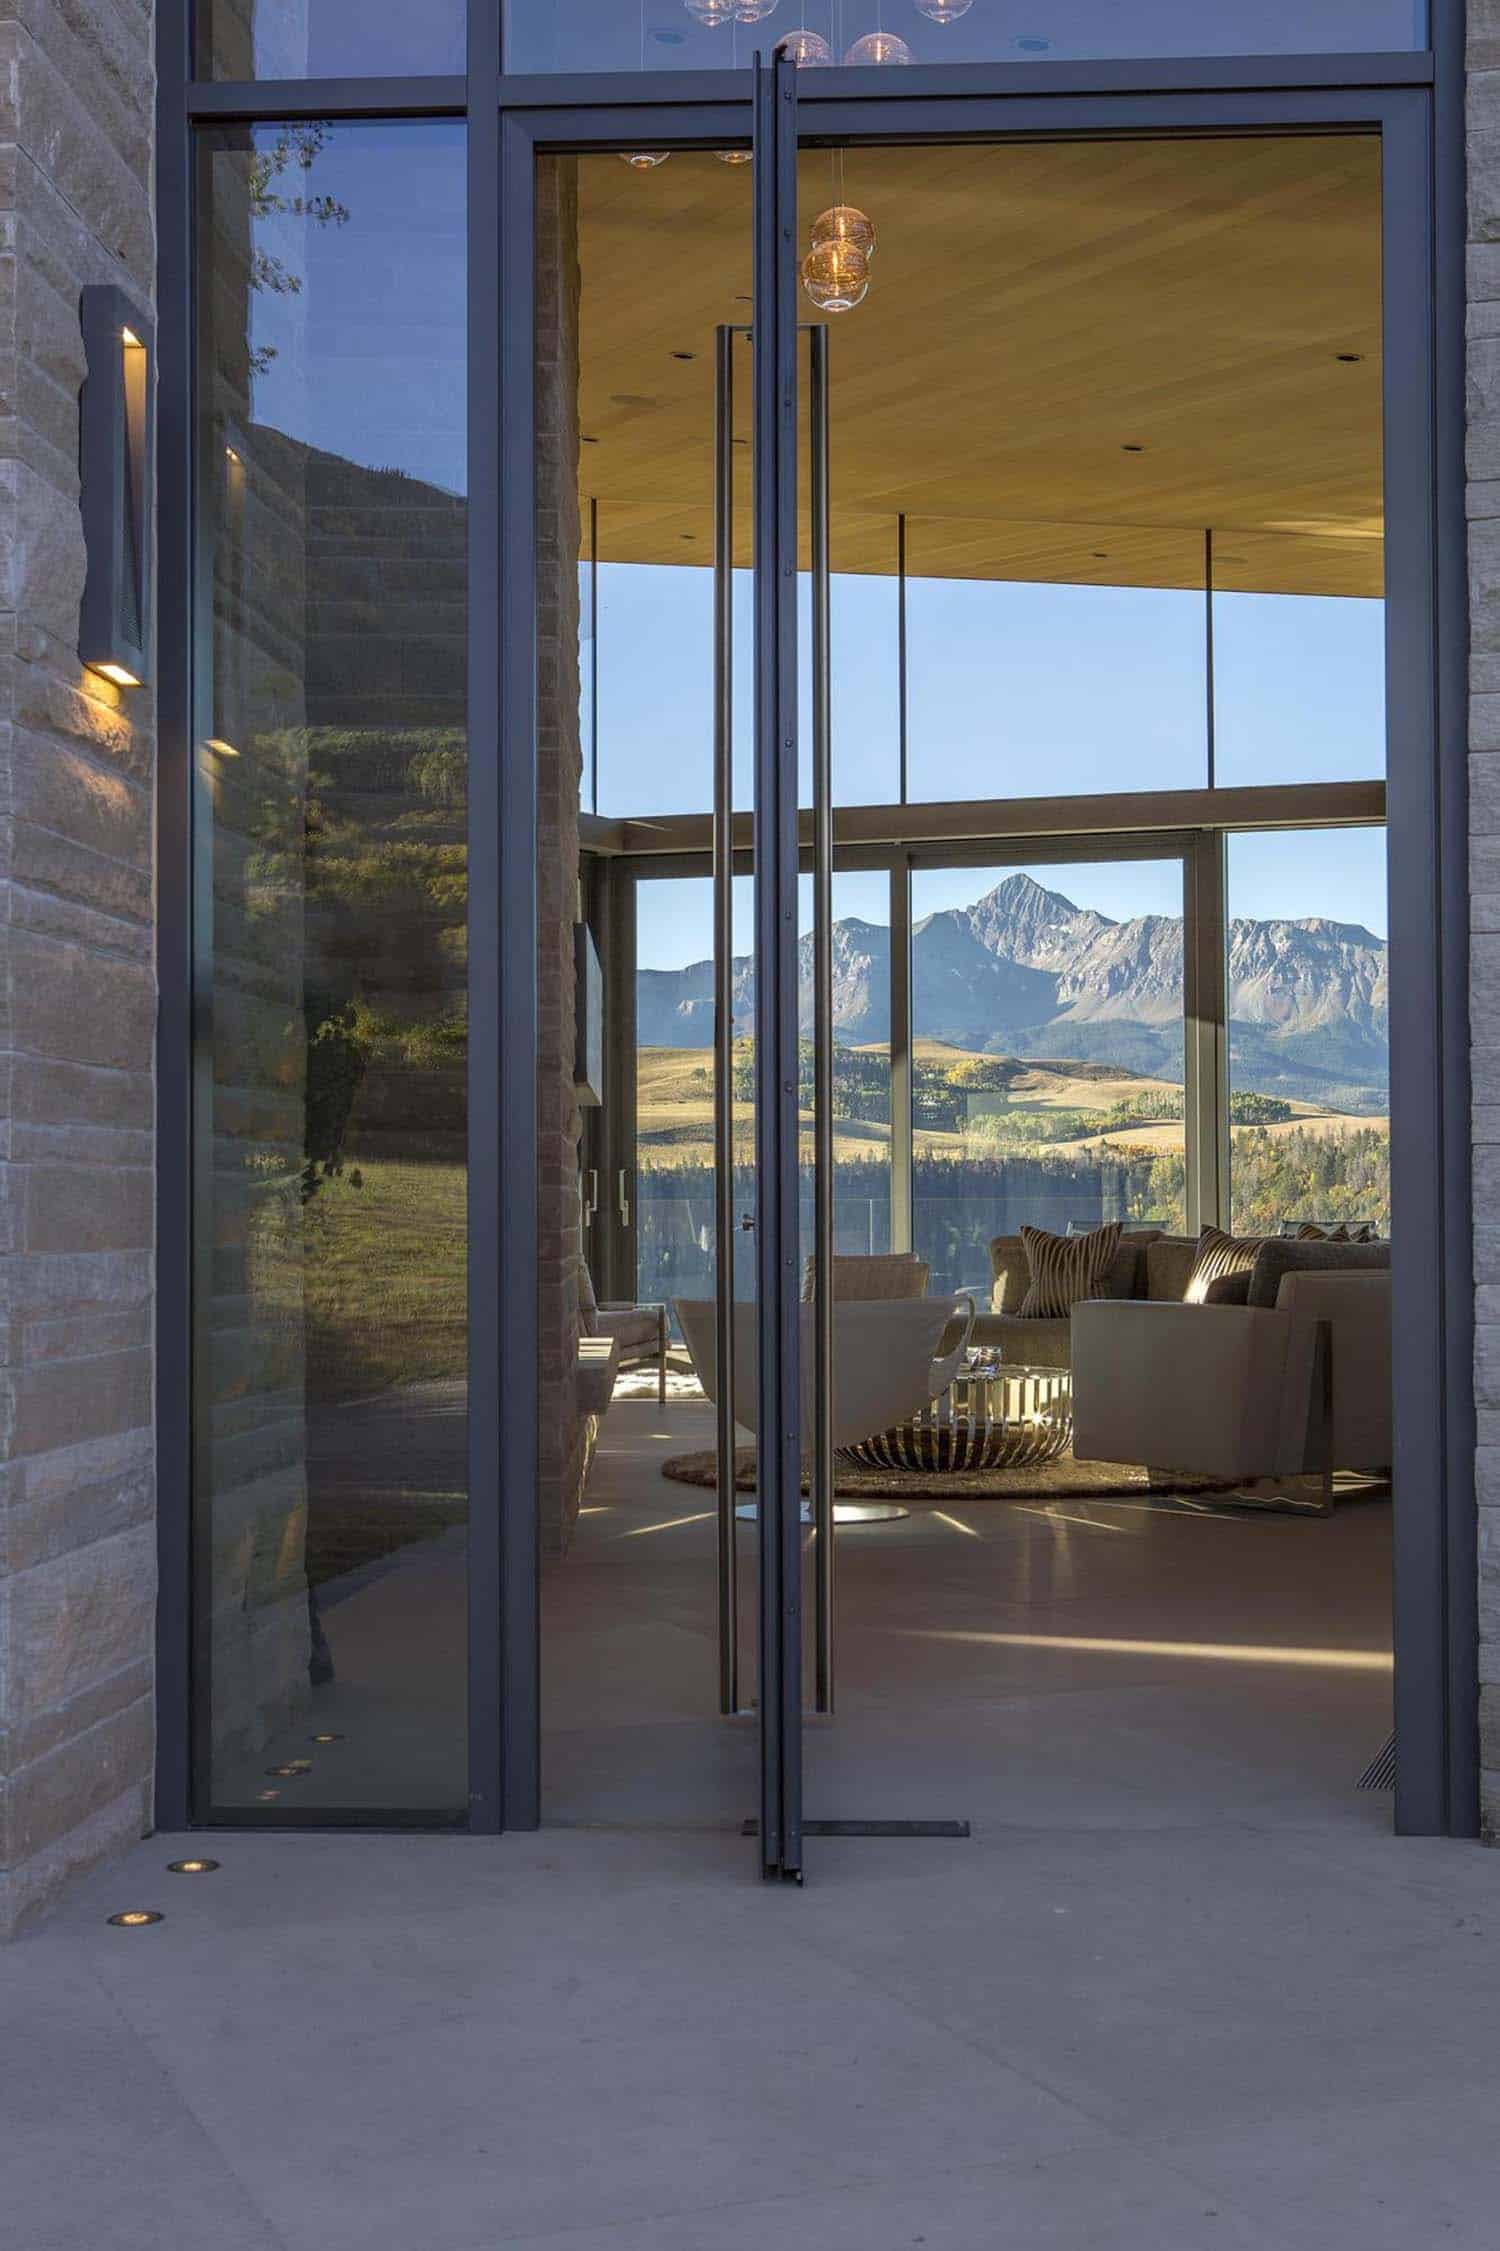 Modern-Residence-Colorado-Poss Architecture-09-1 Kindesign